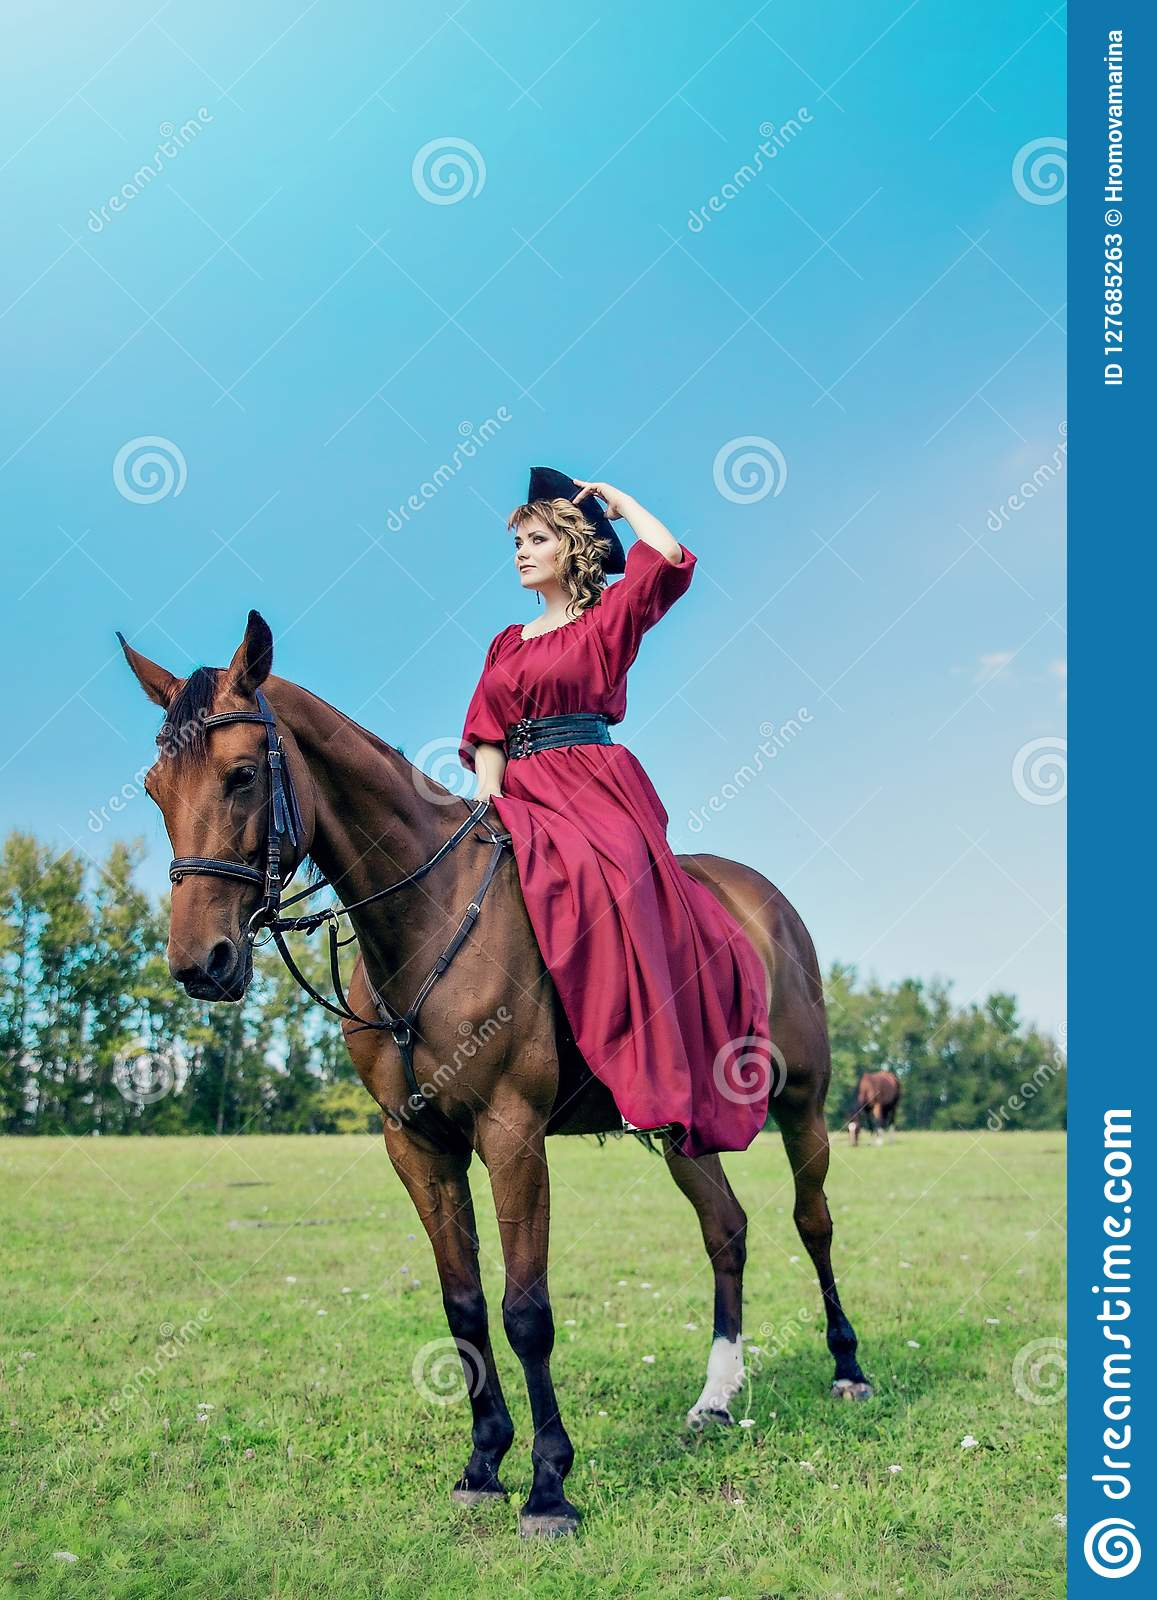 Beautiful girl in a long red dress riding a brown horse against a blue sky.